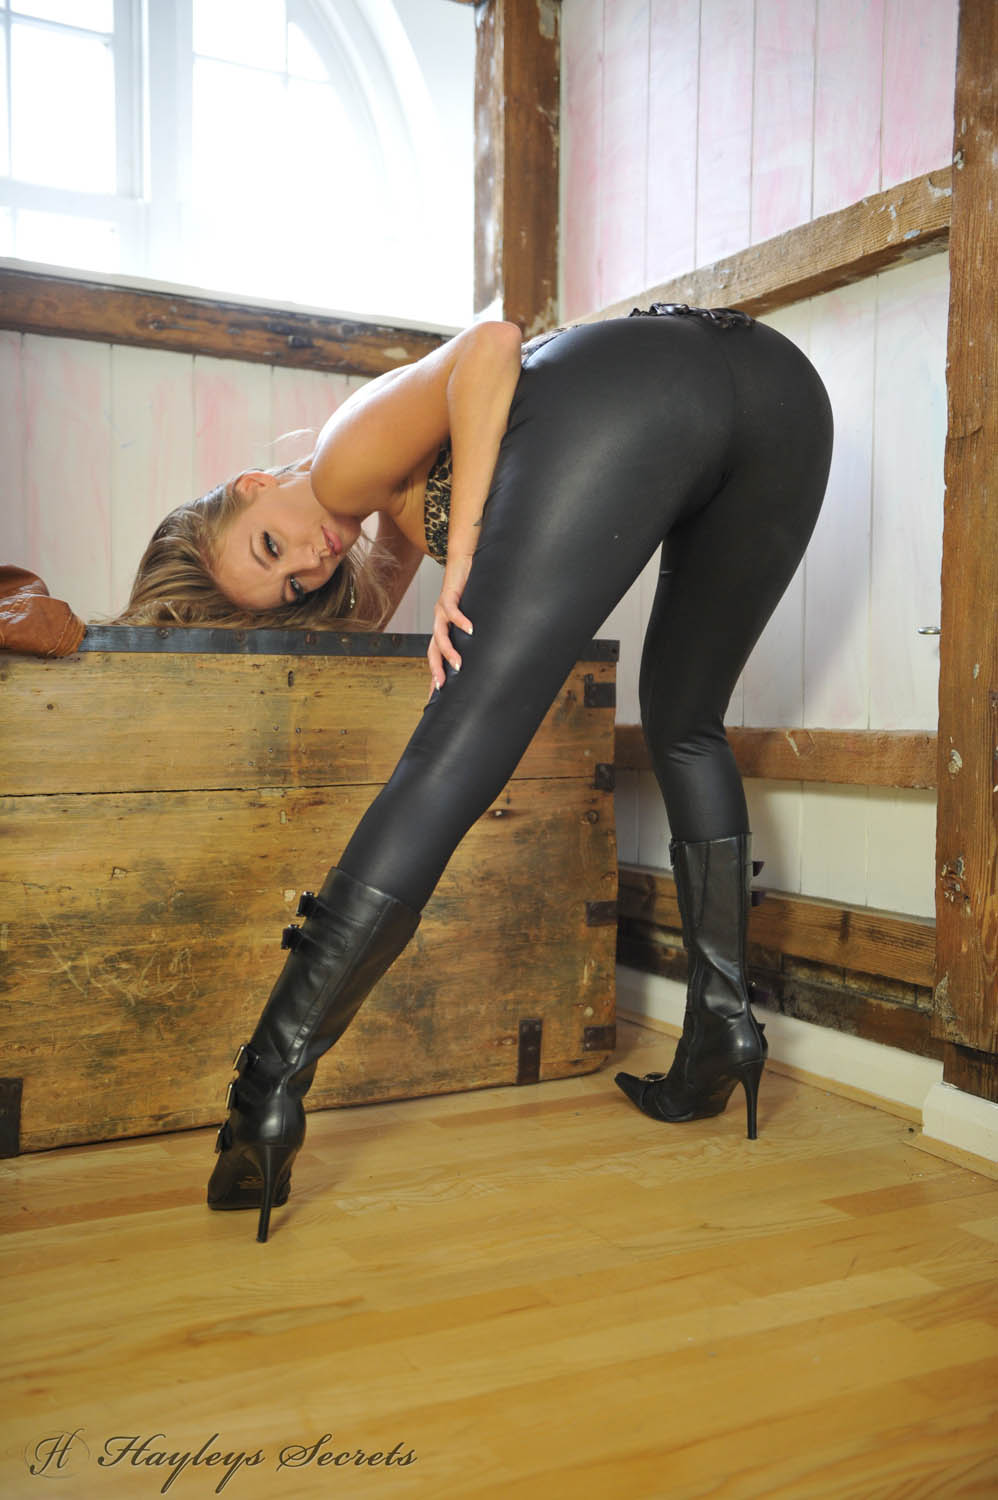 Sex pictures gallerie leatherpants